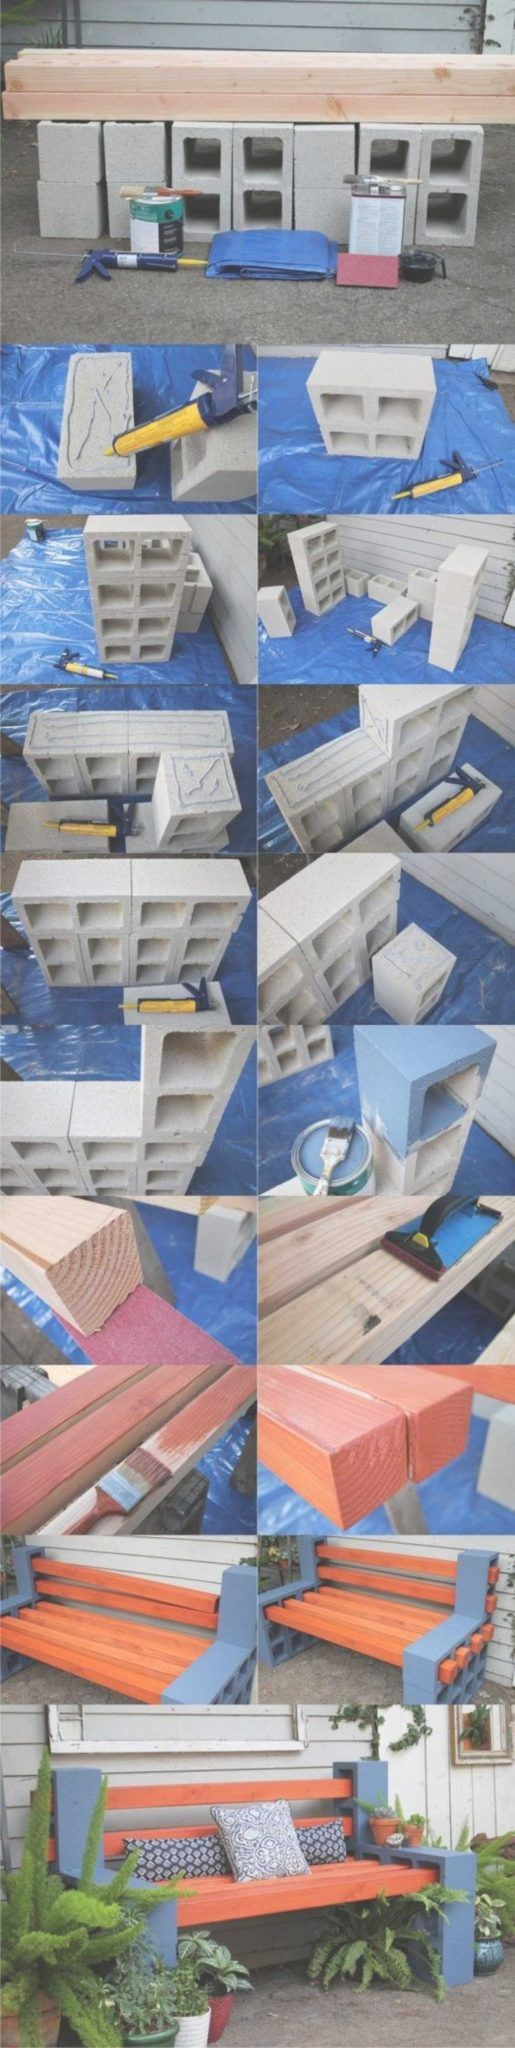 37 stenciled cinder block planter ideas and free 2017 from zola decor - The 25 Best Cinder Block Walls Ideas On Pinterest Decorating Cinder Block Walls Painting Basement Walls And Basement Walls